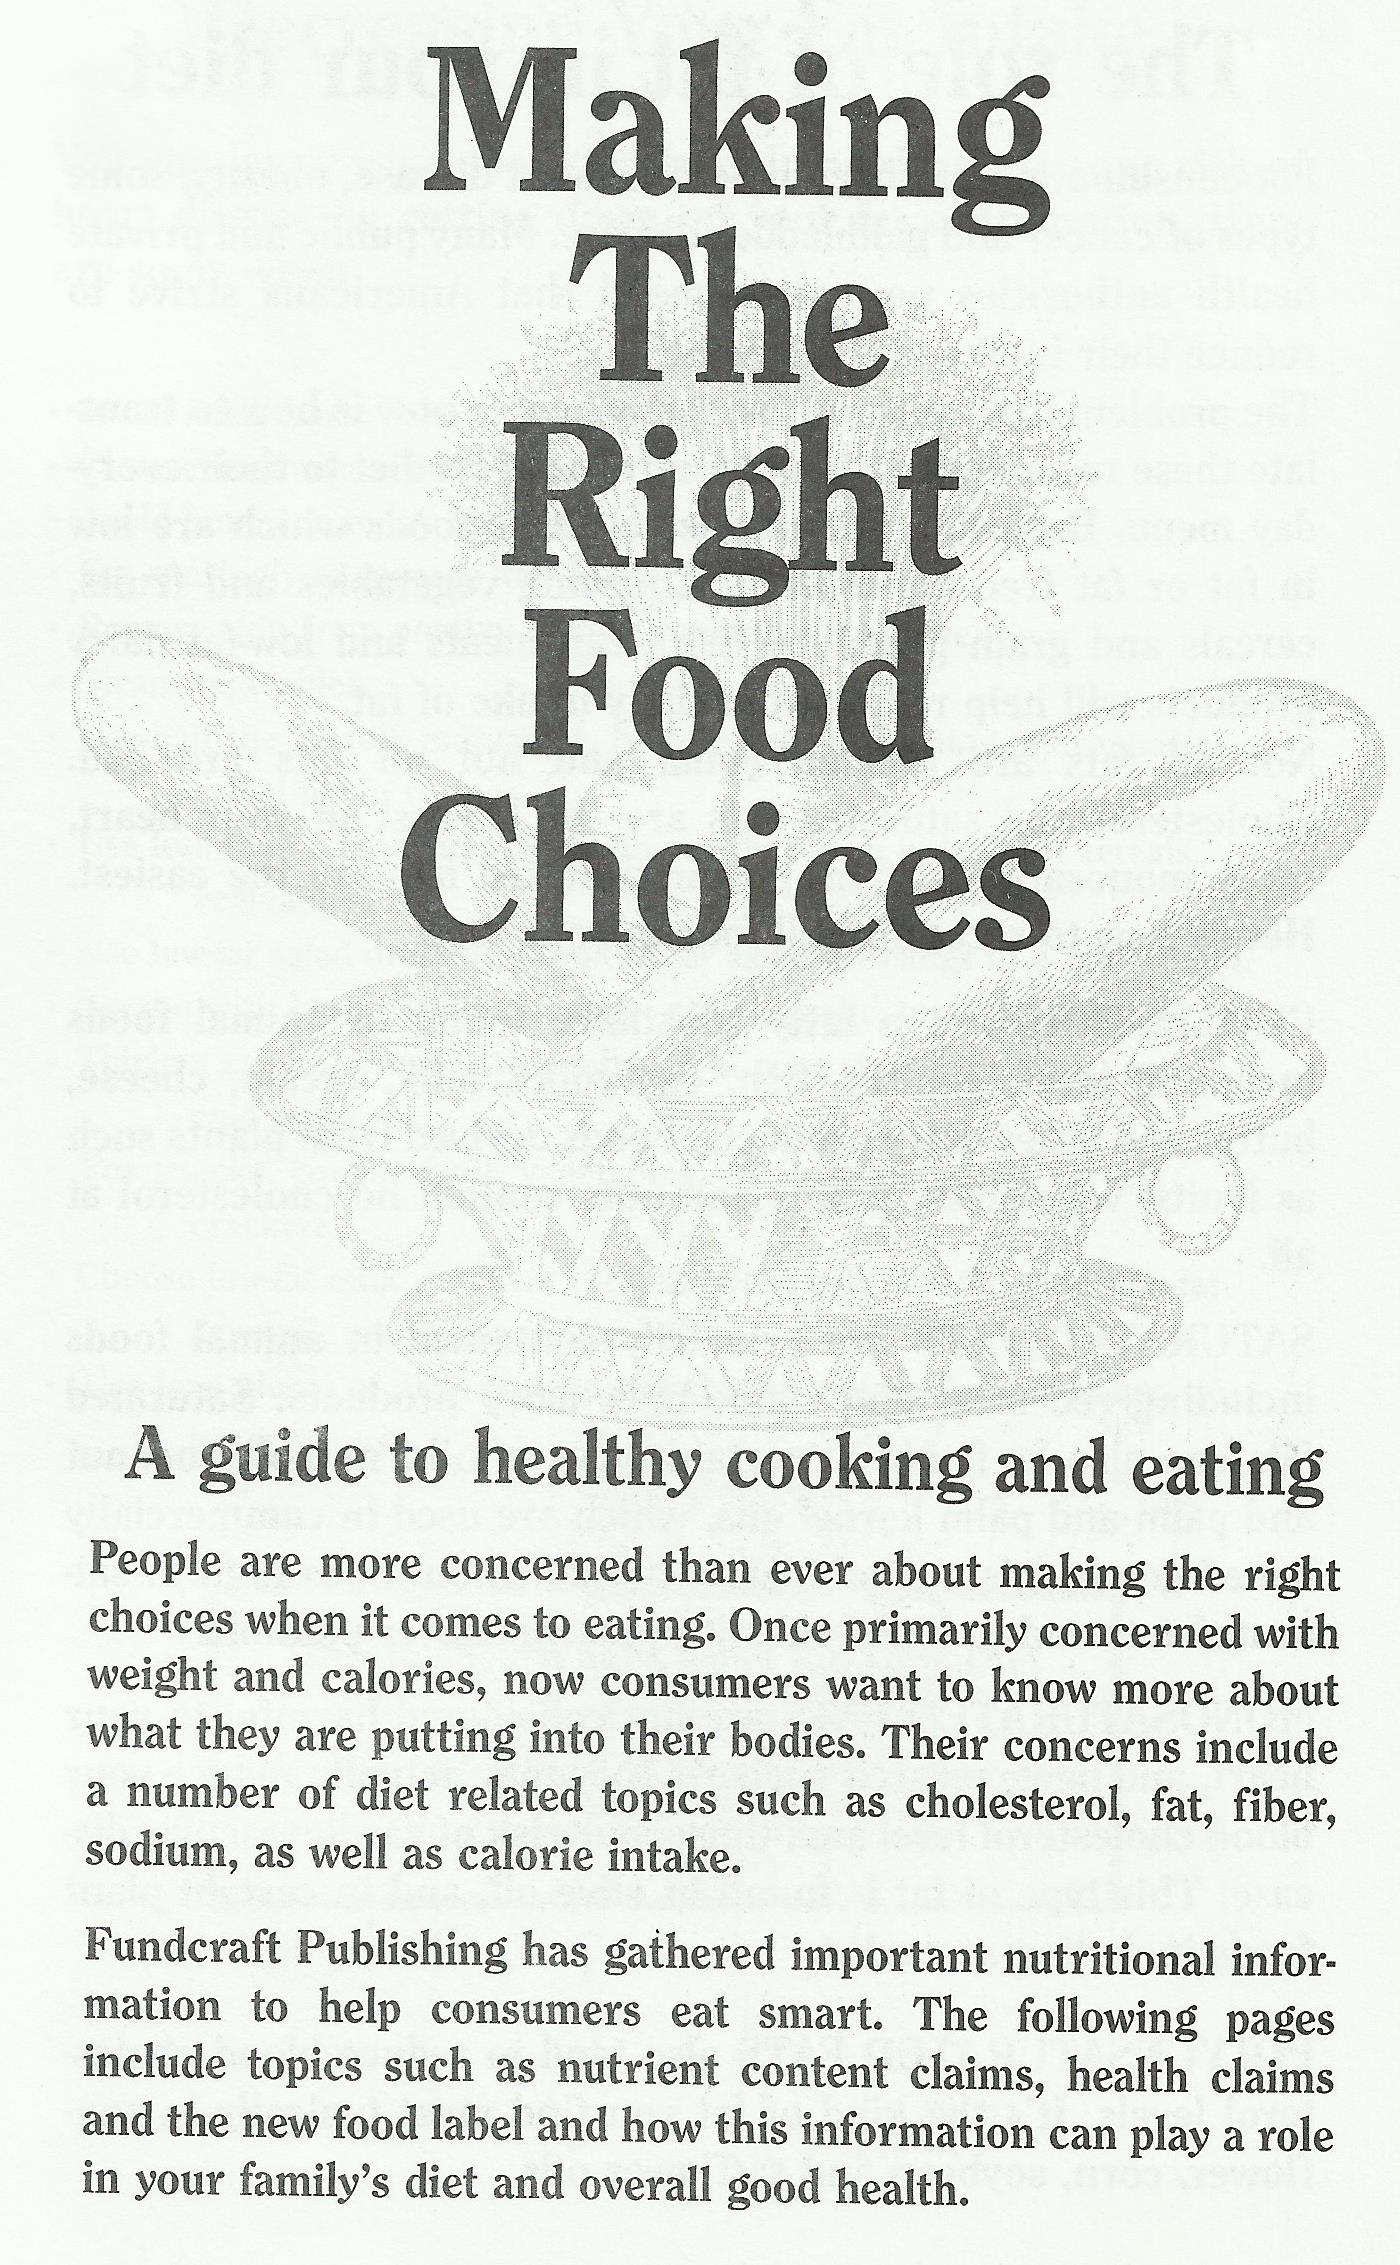 Making the Right Food Choices